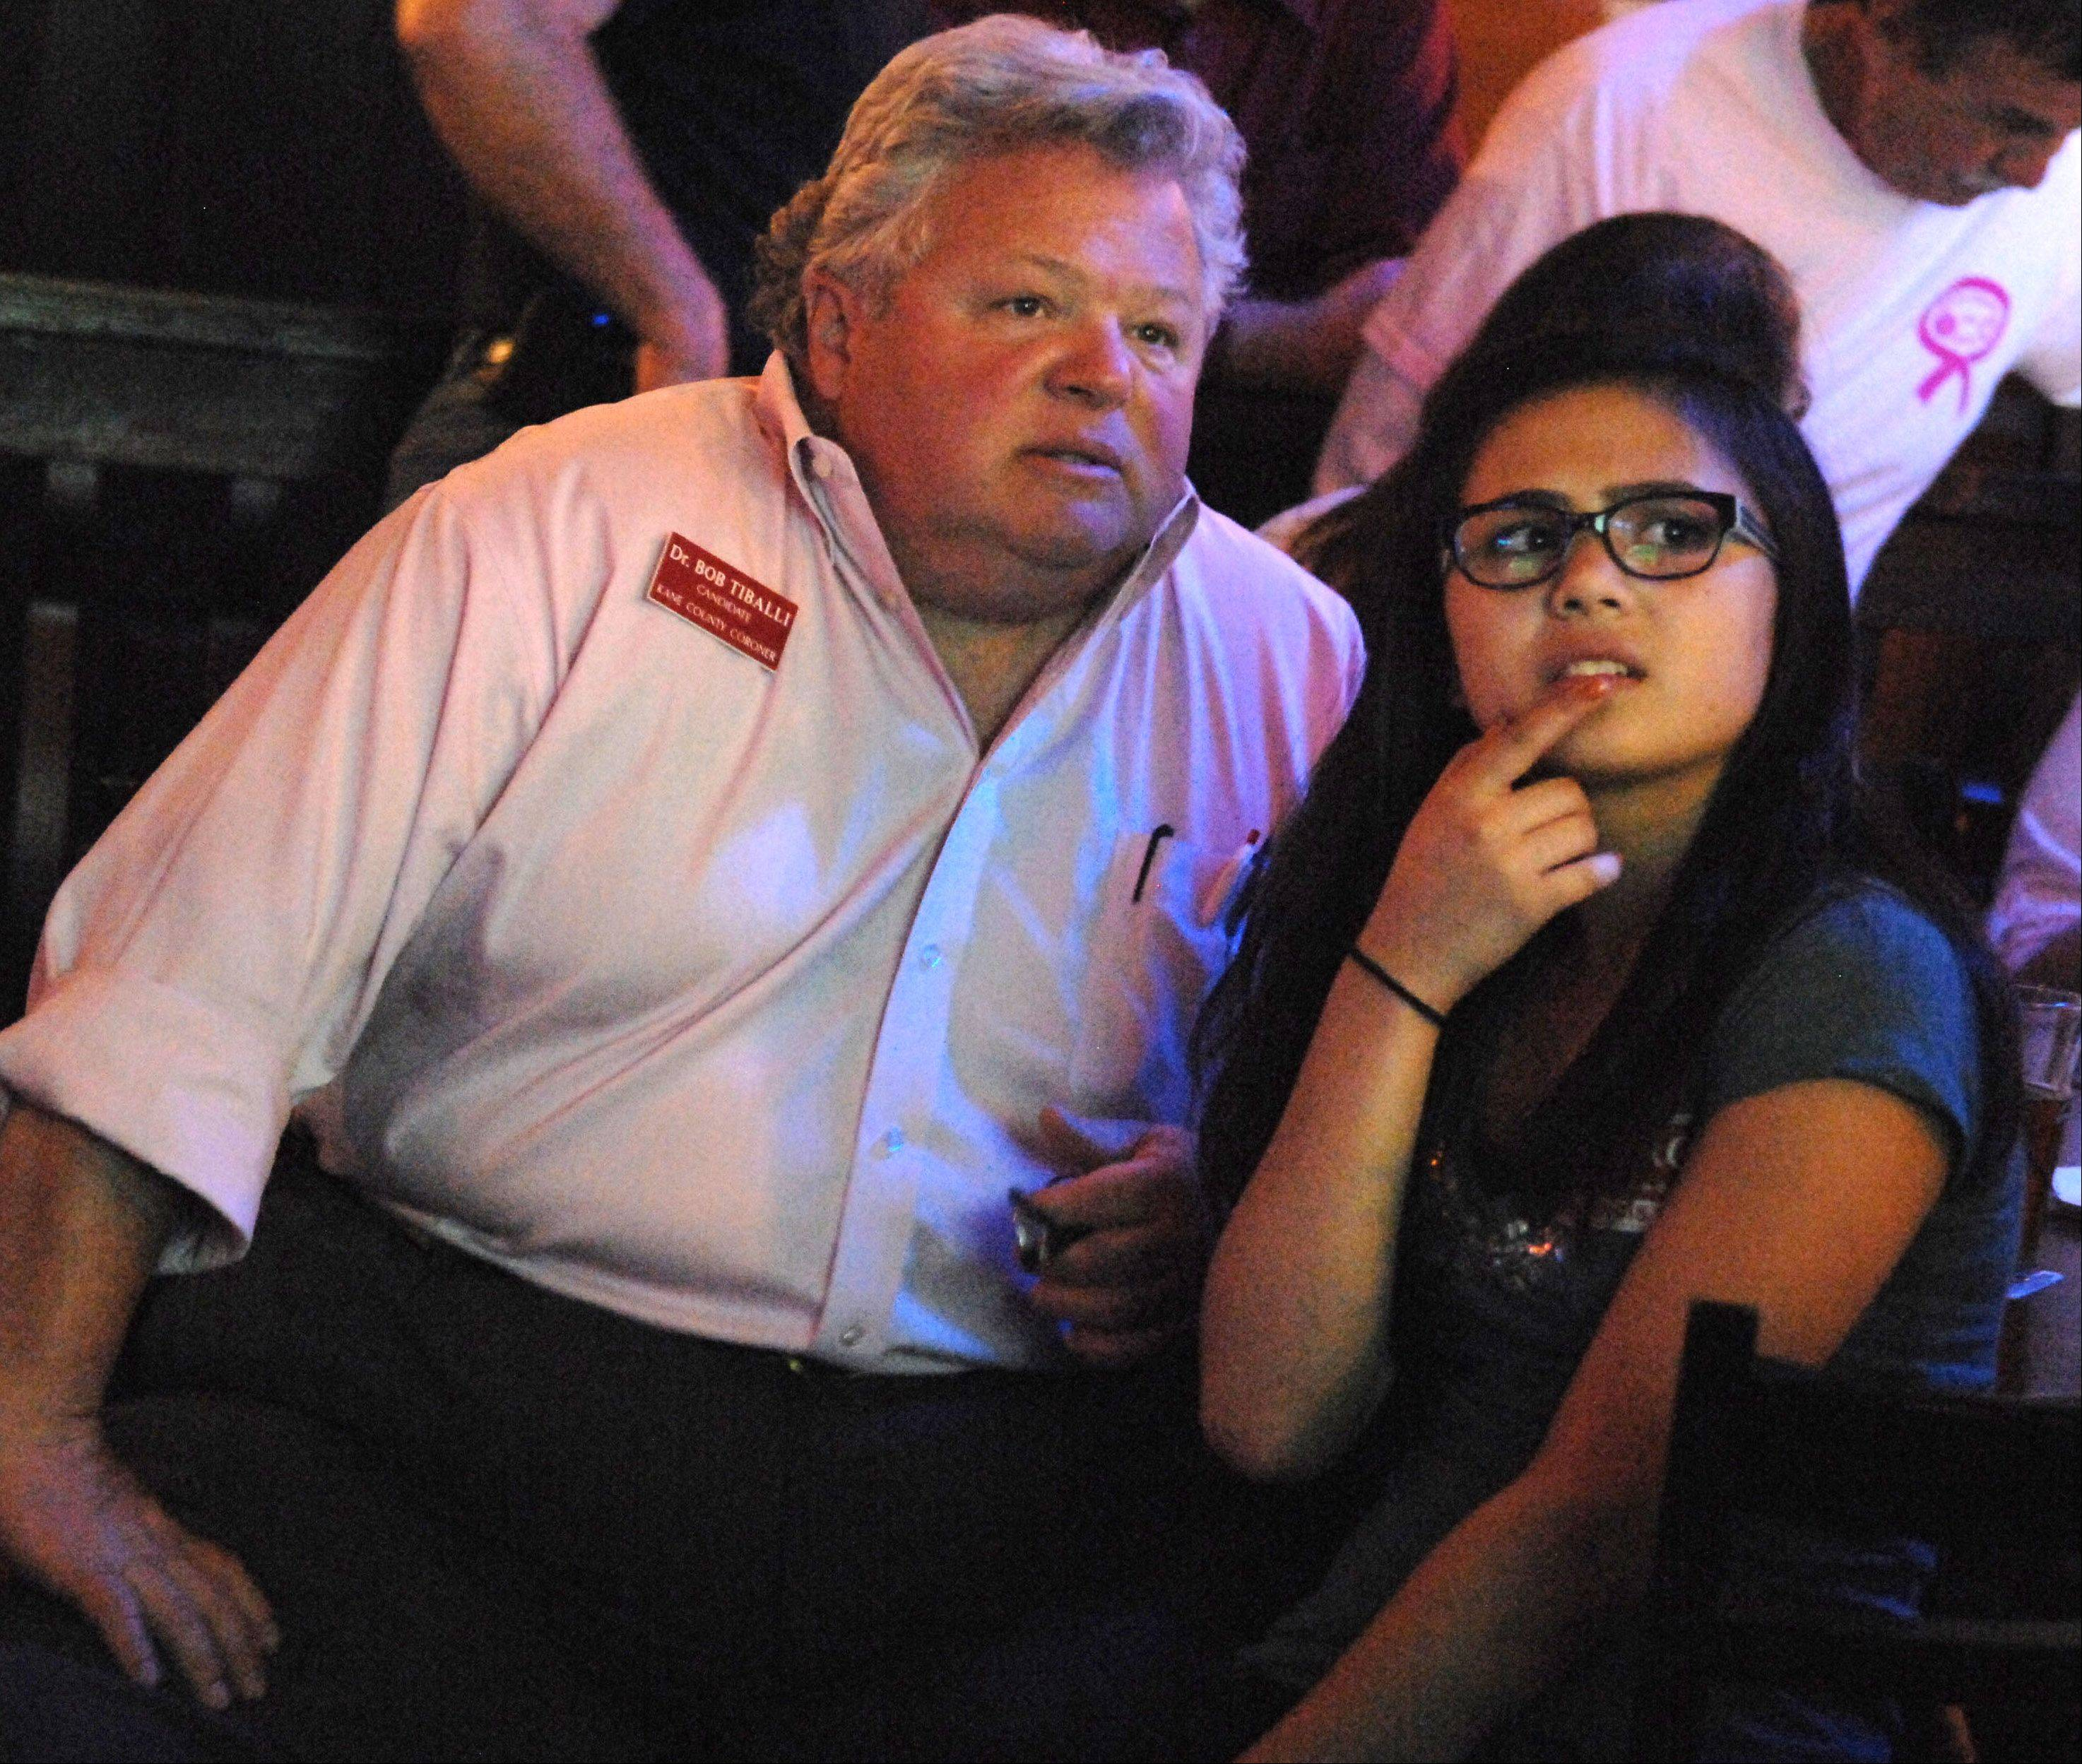 Republican Bob Tiballi watches results for his primary race for Kane County coroner with his daughter Francesca, 14, Tuesday night at Alley 64 in St. Charles.